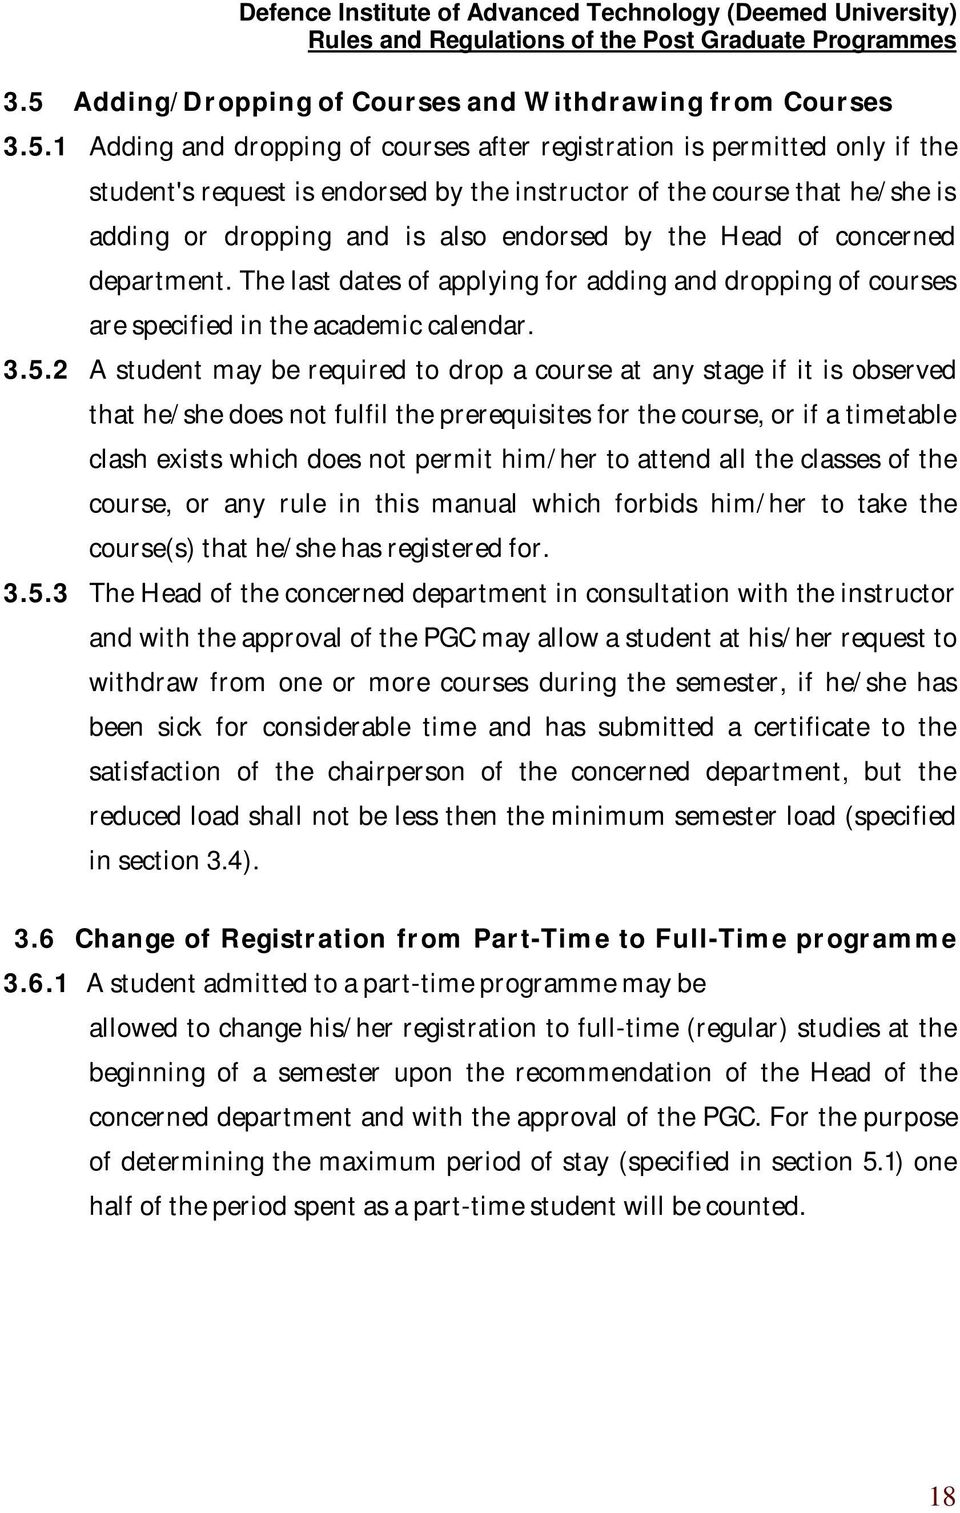 3.5.2 A student may be required to drop a course at any stage if it is observed that he/she does not fulfil the prerequisites for the course, or if a timetable clash exists which does not permit